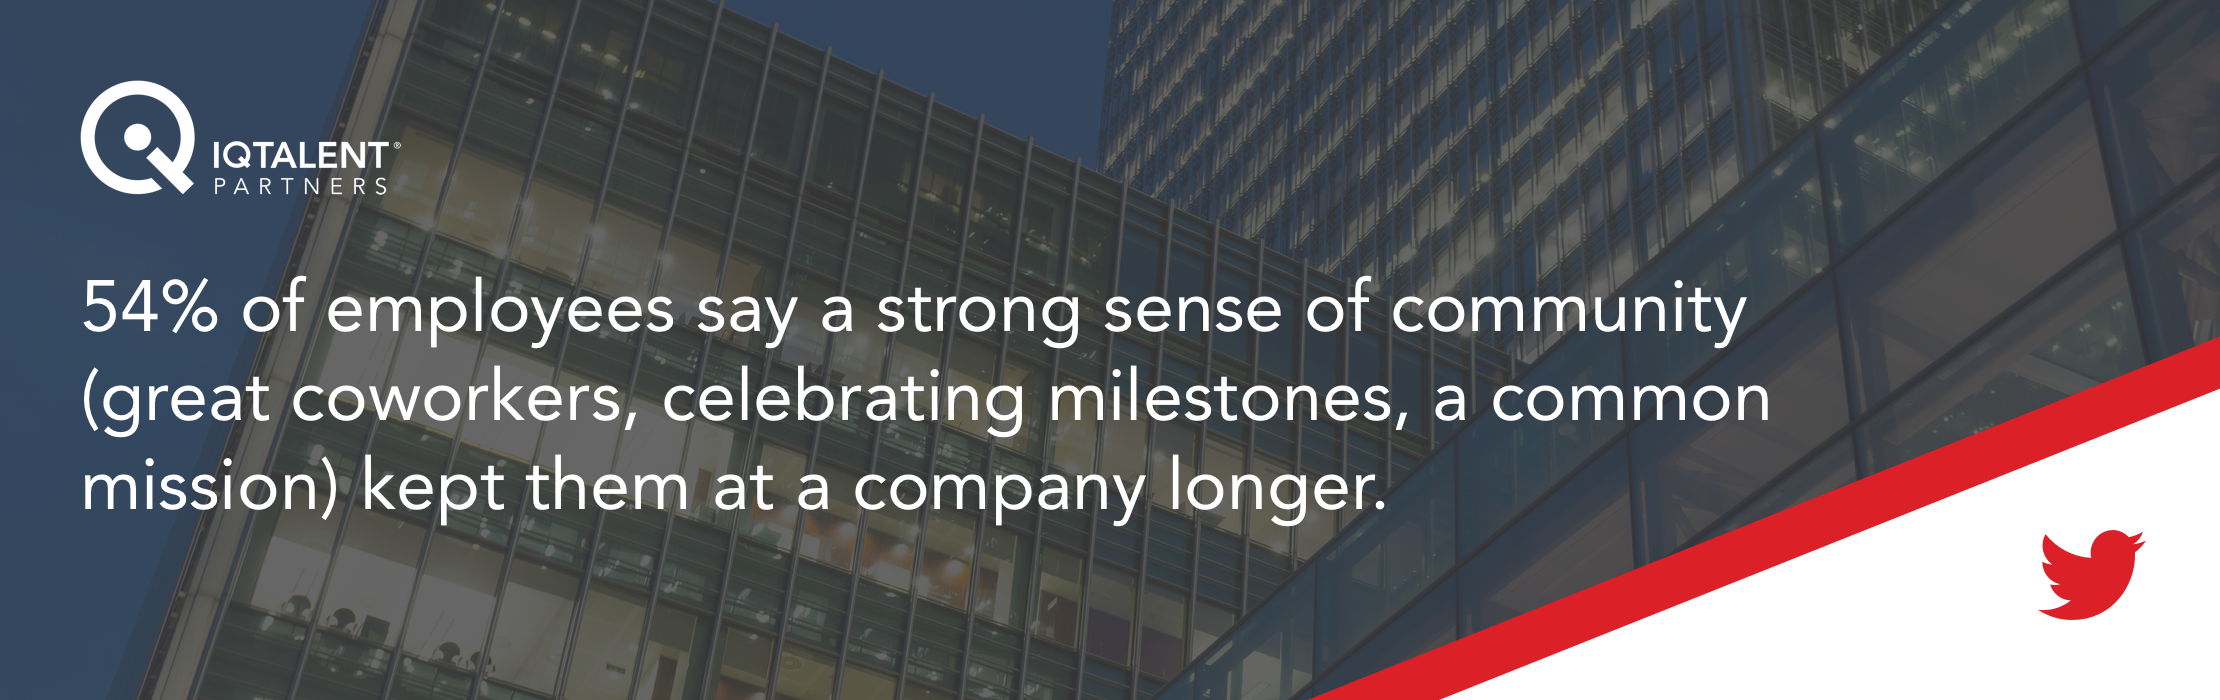 54% of employees say a strong sense of community (great coworkers, celebrating milestones, a common mission) kept them at a company longer.